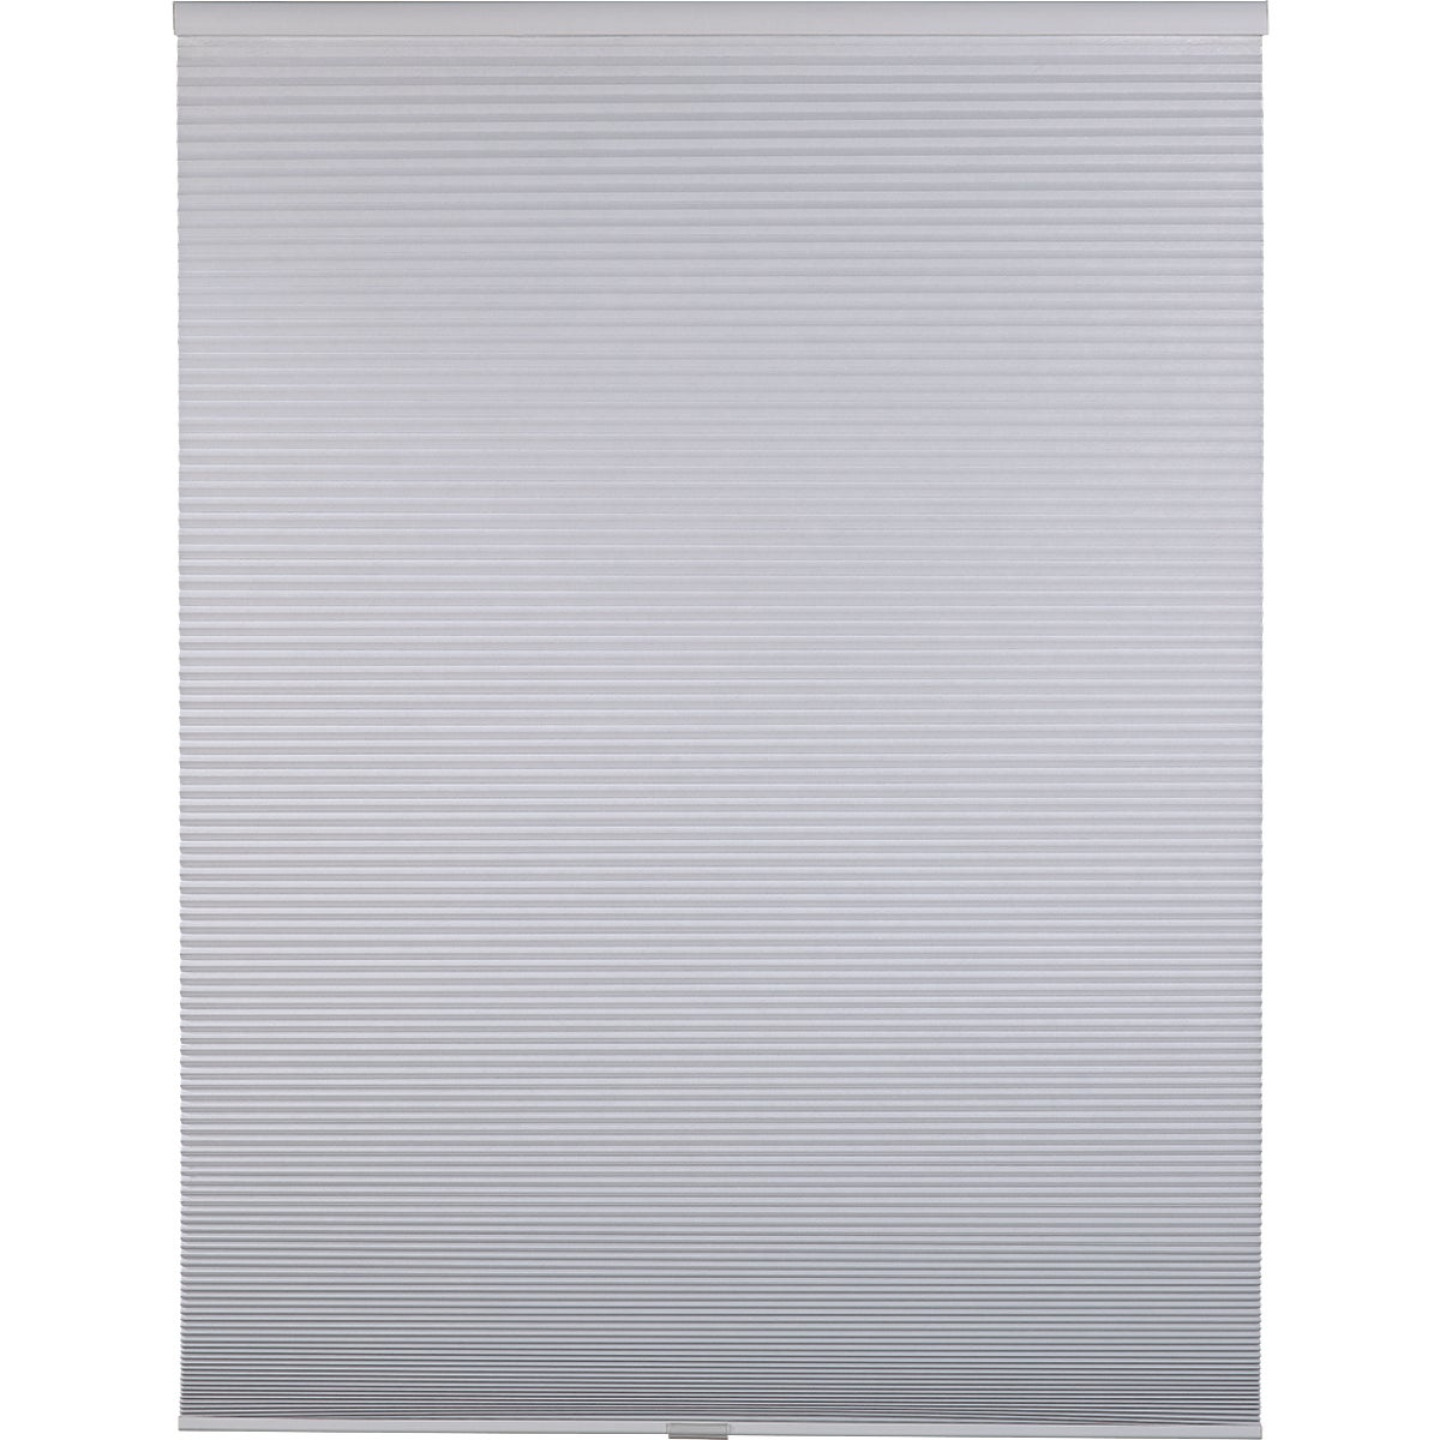 Home Impressions 1 In. Room Darkening Cellular White 36 In. x 72 In. Cordless Shade Image 1